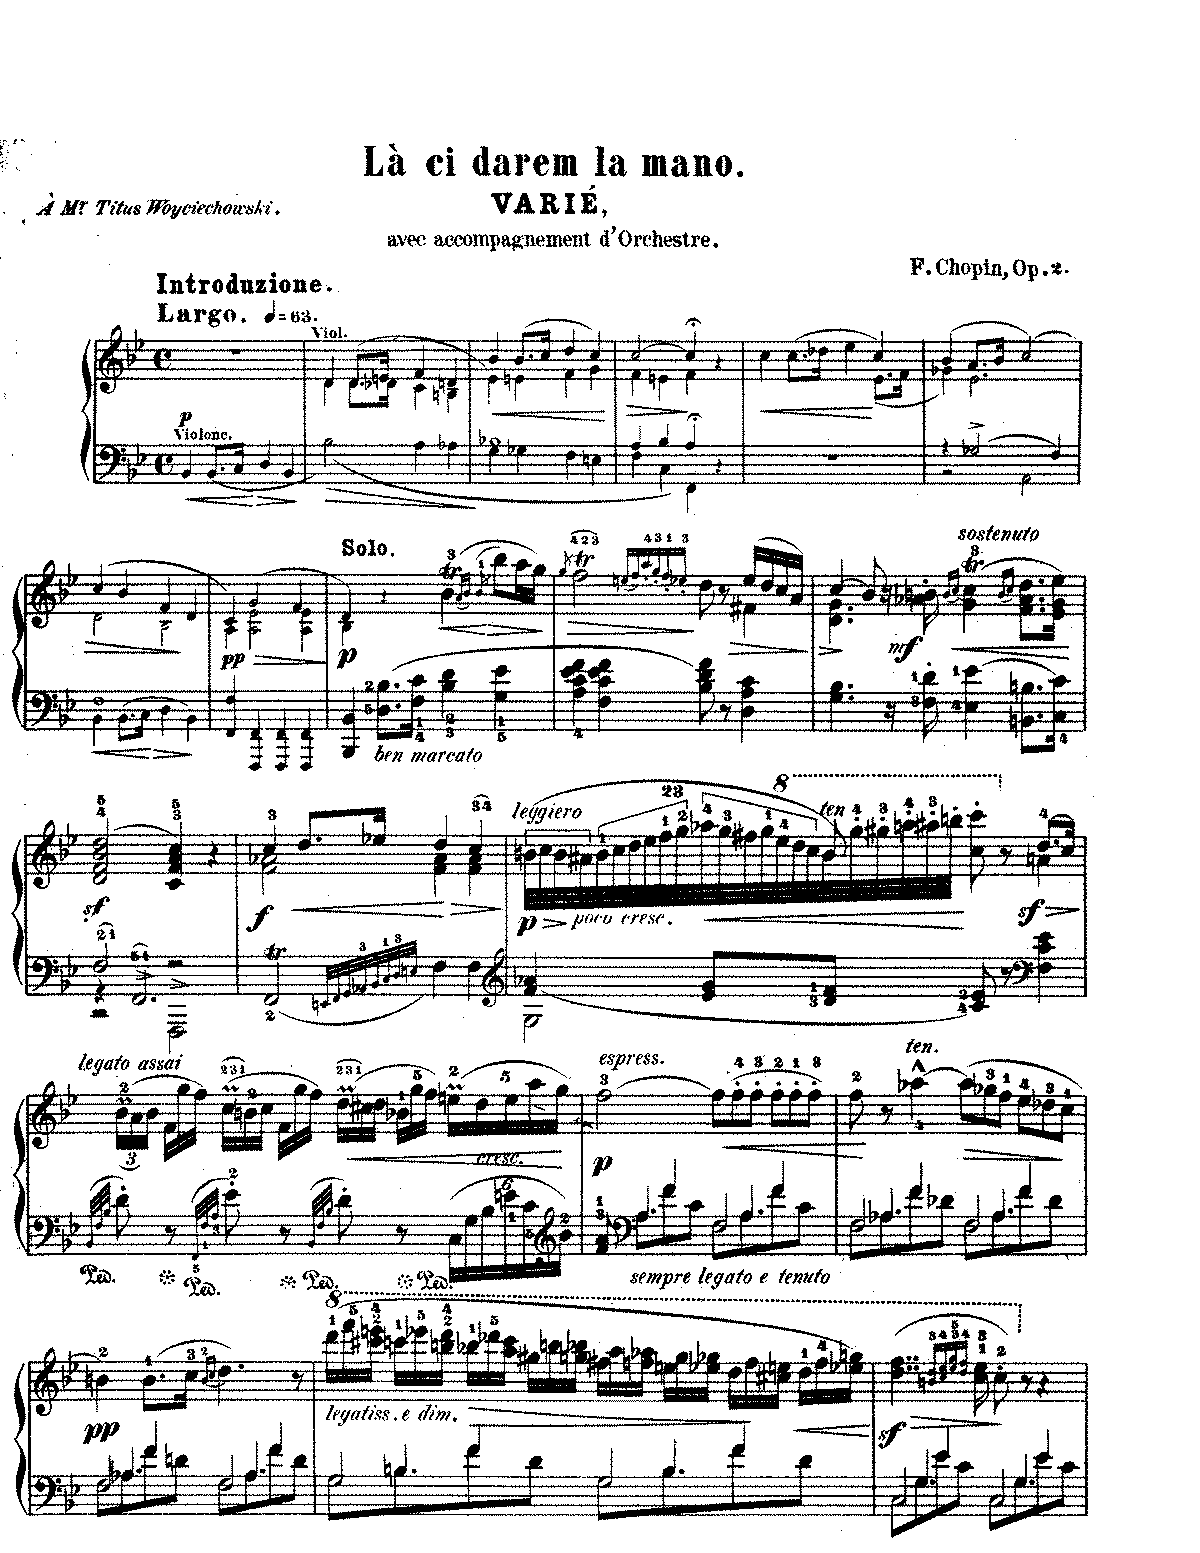 Chopin - Variations on La Ci Darem la Mano, Op 2.pdf